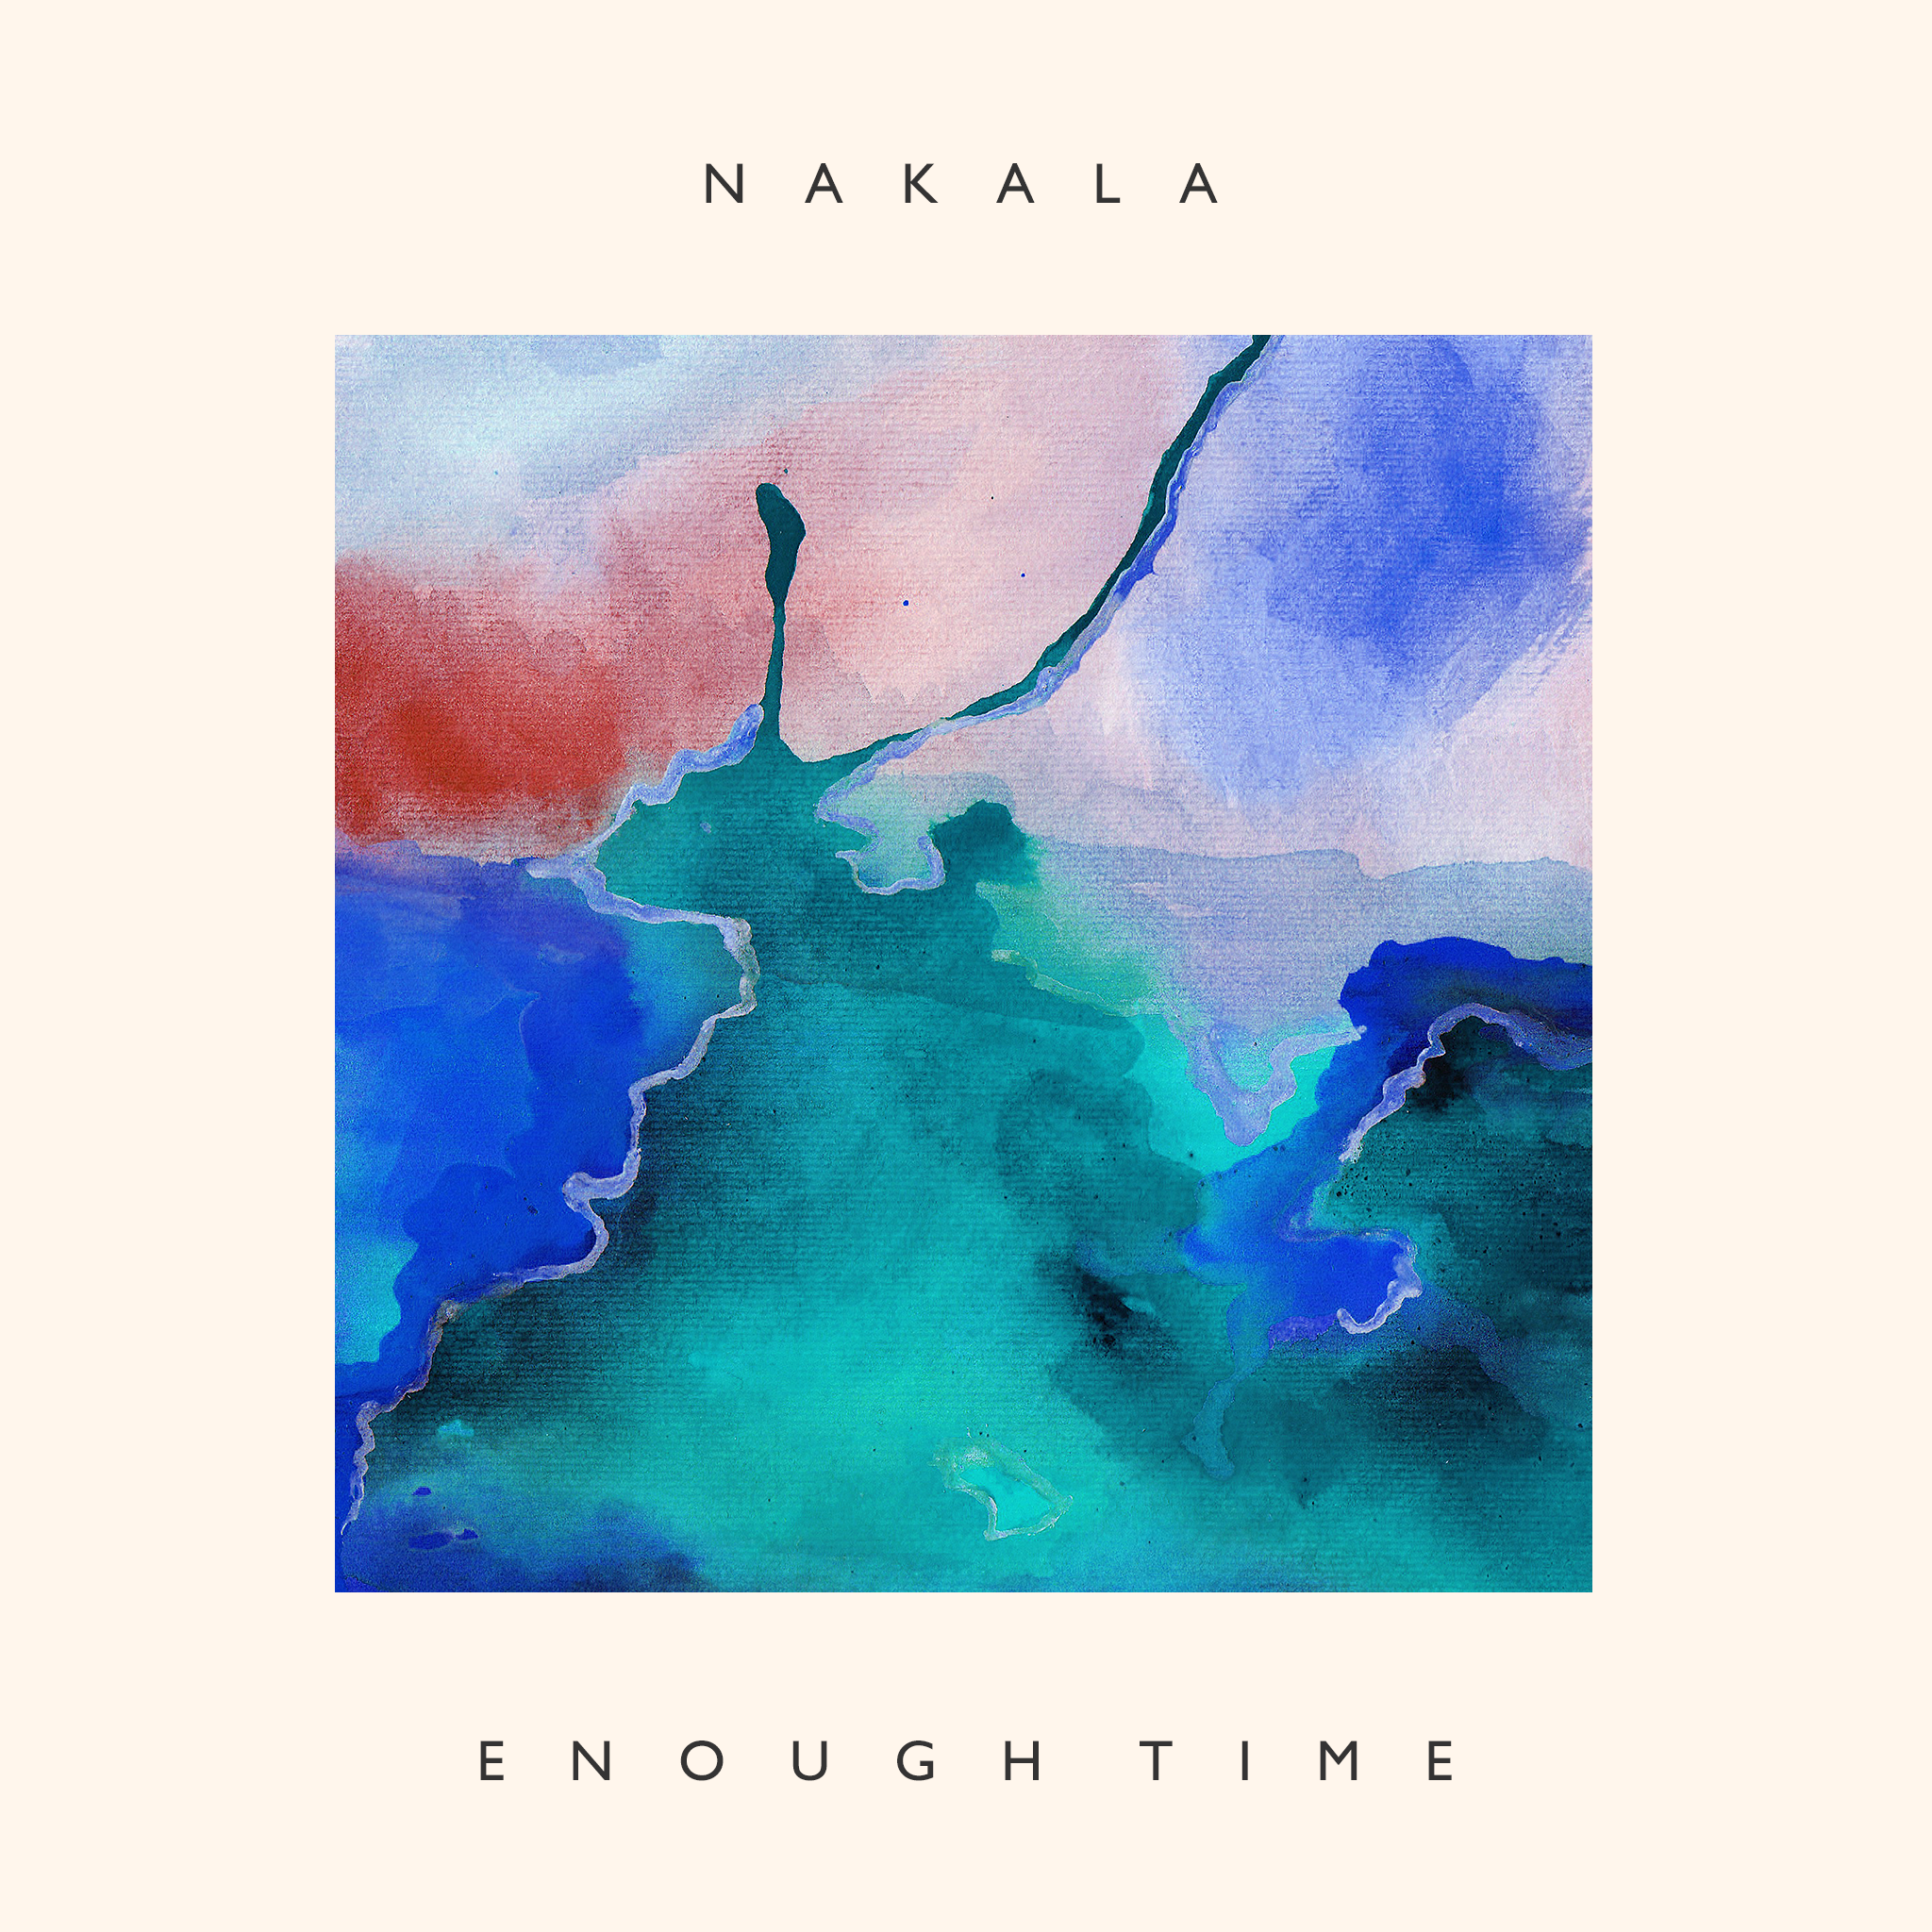 nakala enoughtime artwork sample.png